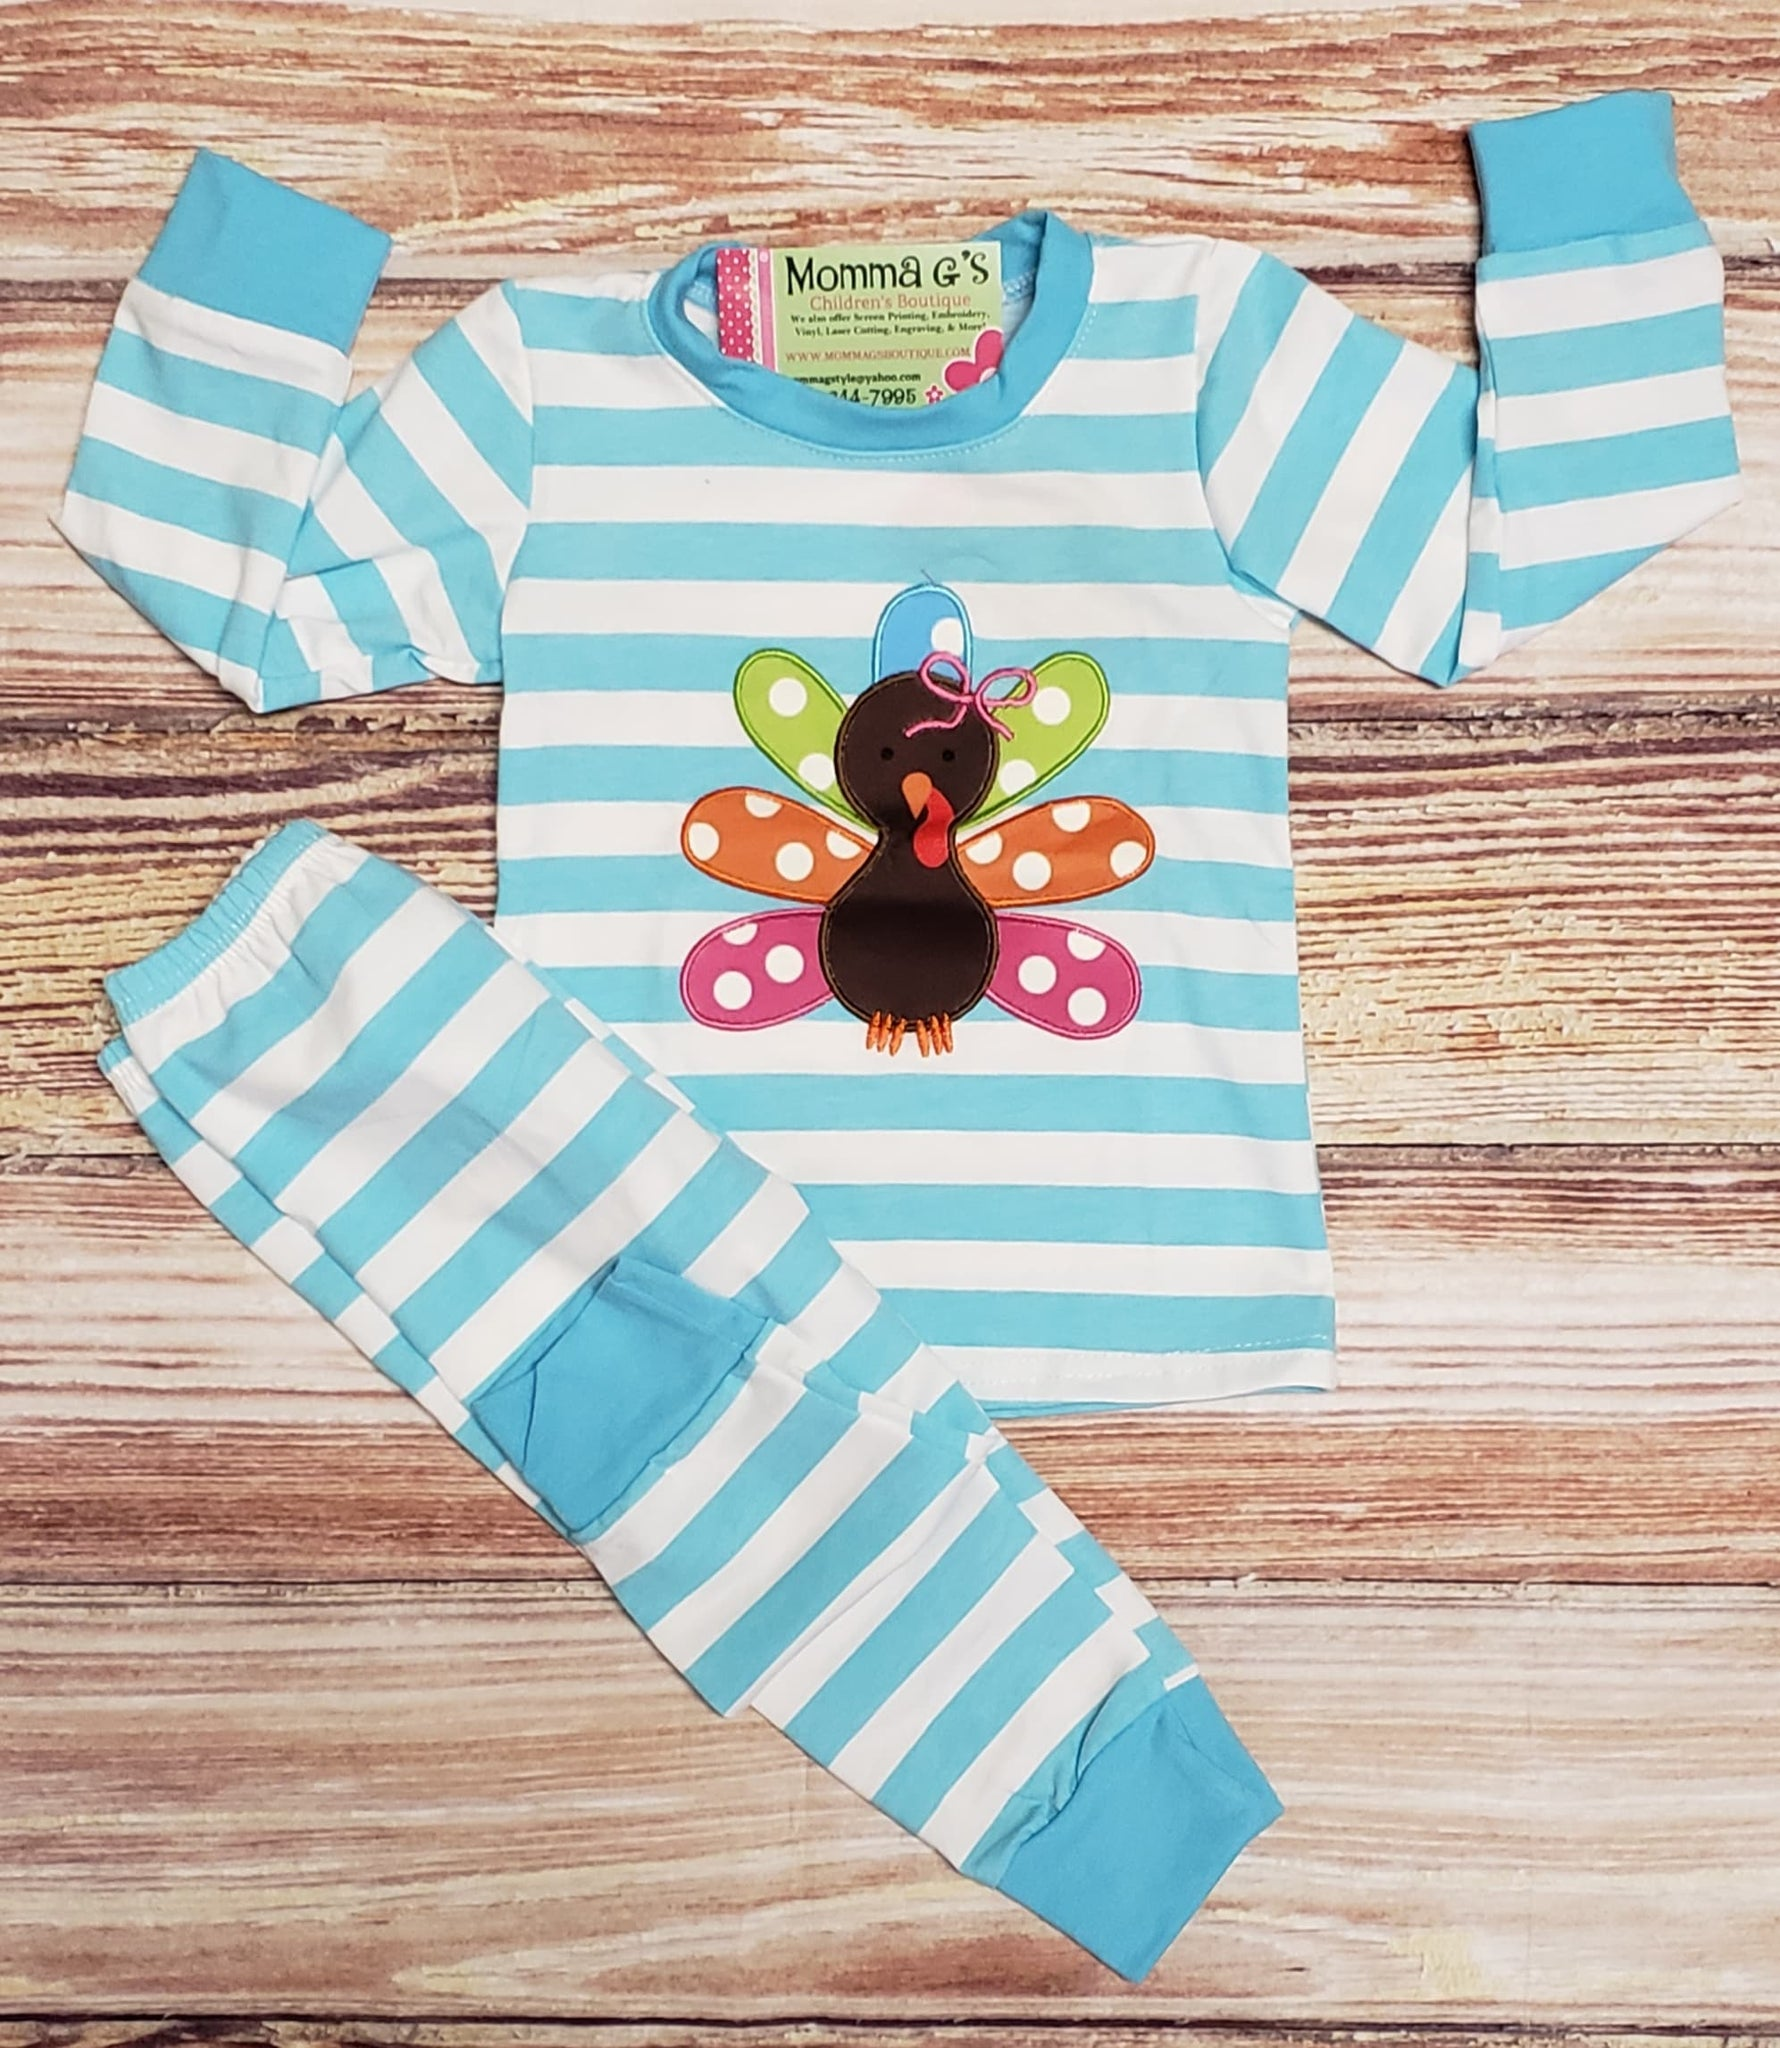 Girl's Turkey Pj's - Momma G's Boutique